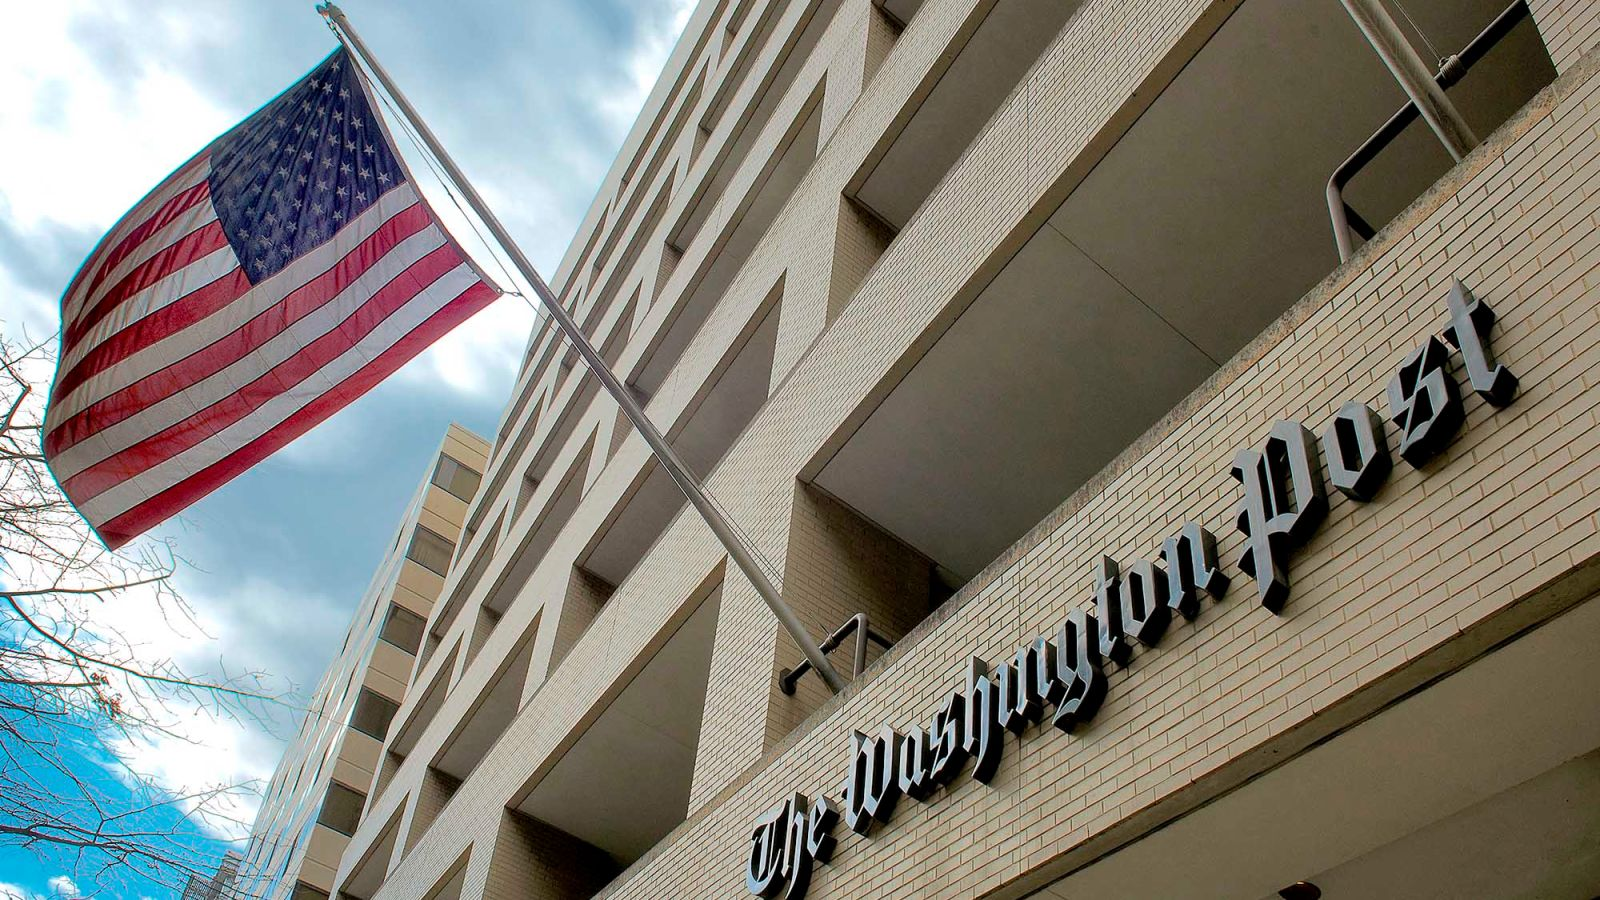 Washington Post Offers Non-Subscribers 10 Free Articles To Fact Check Per Month https://t.co/oY8TYFqbGW https://t.co/IcCpgkoo5E